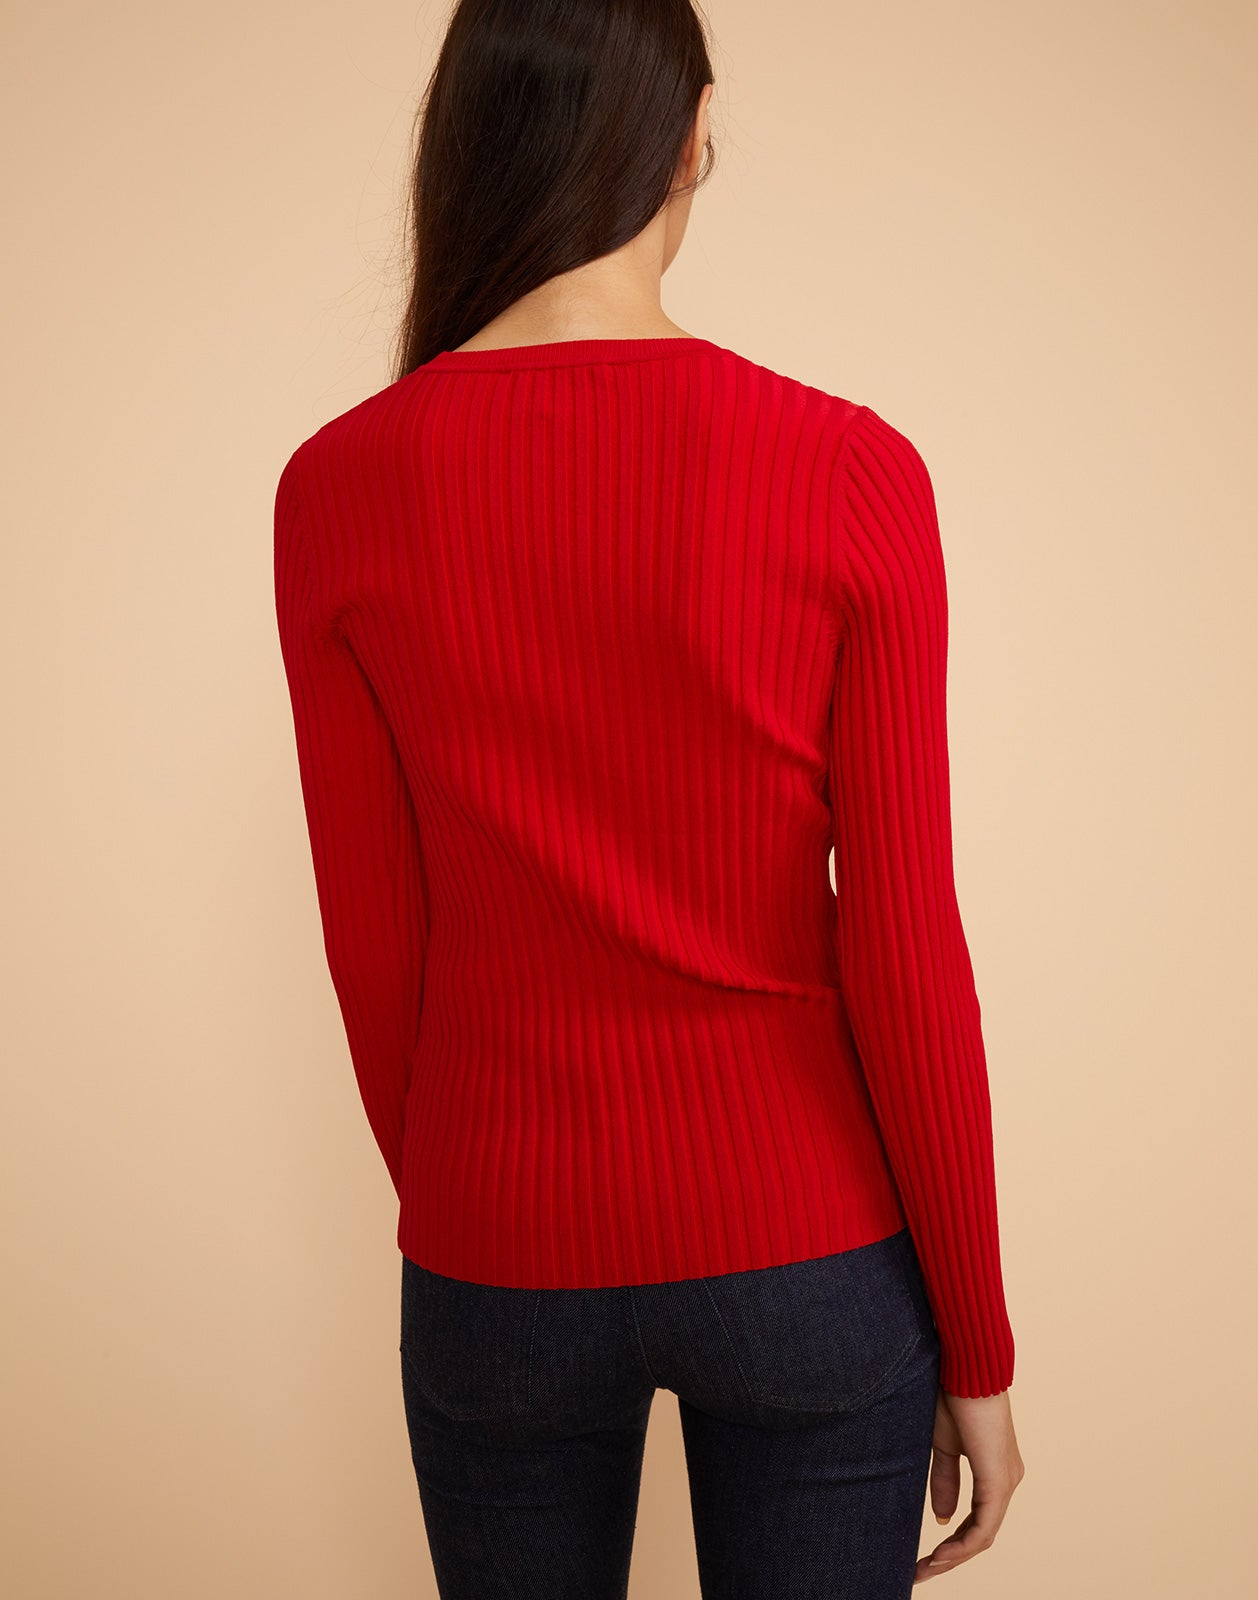 Back view of Haven ribbed sweater in red.